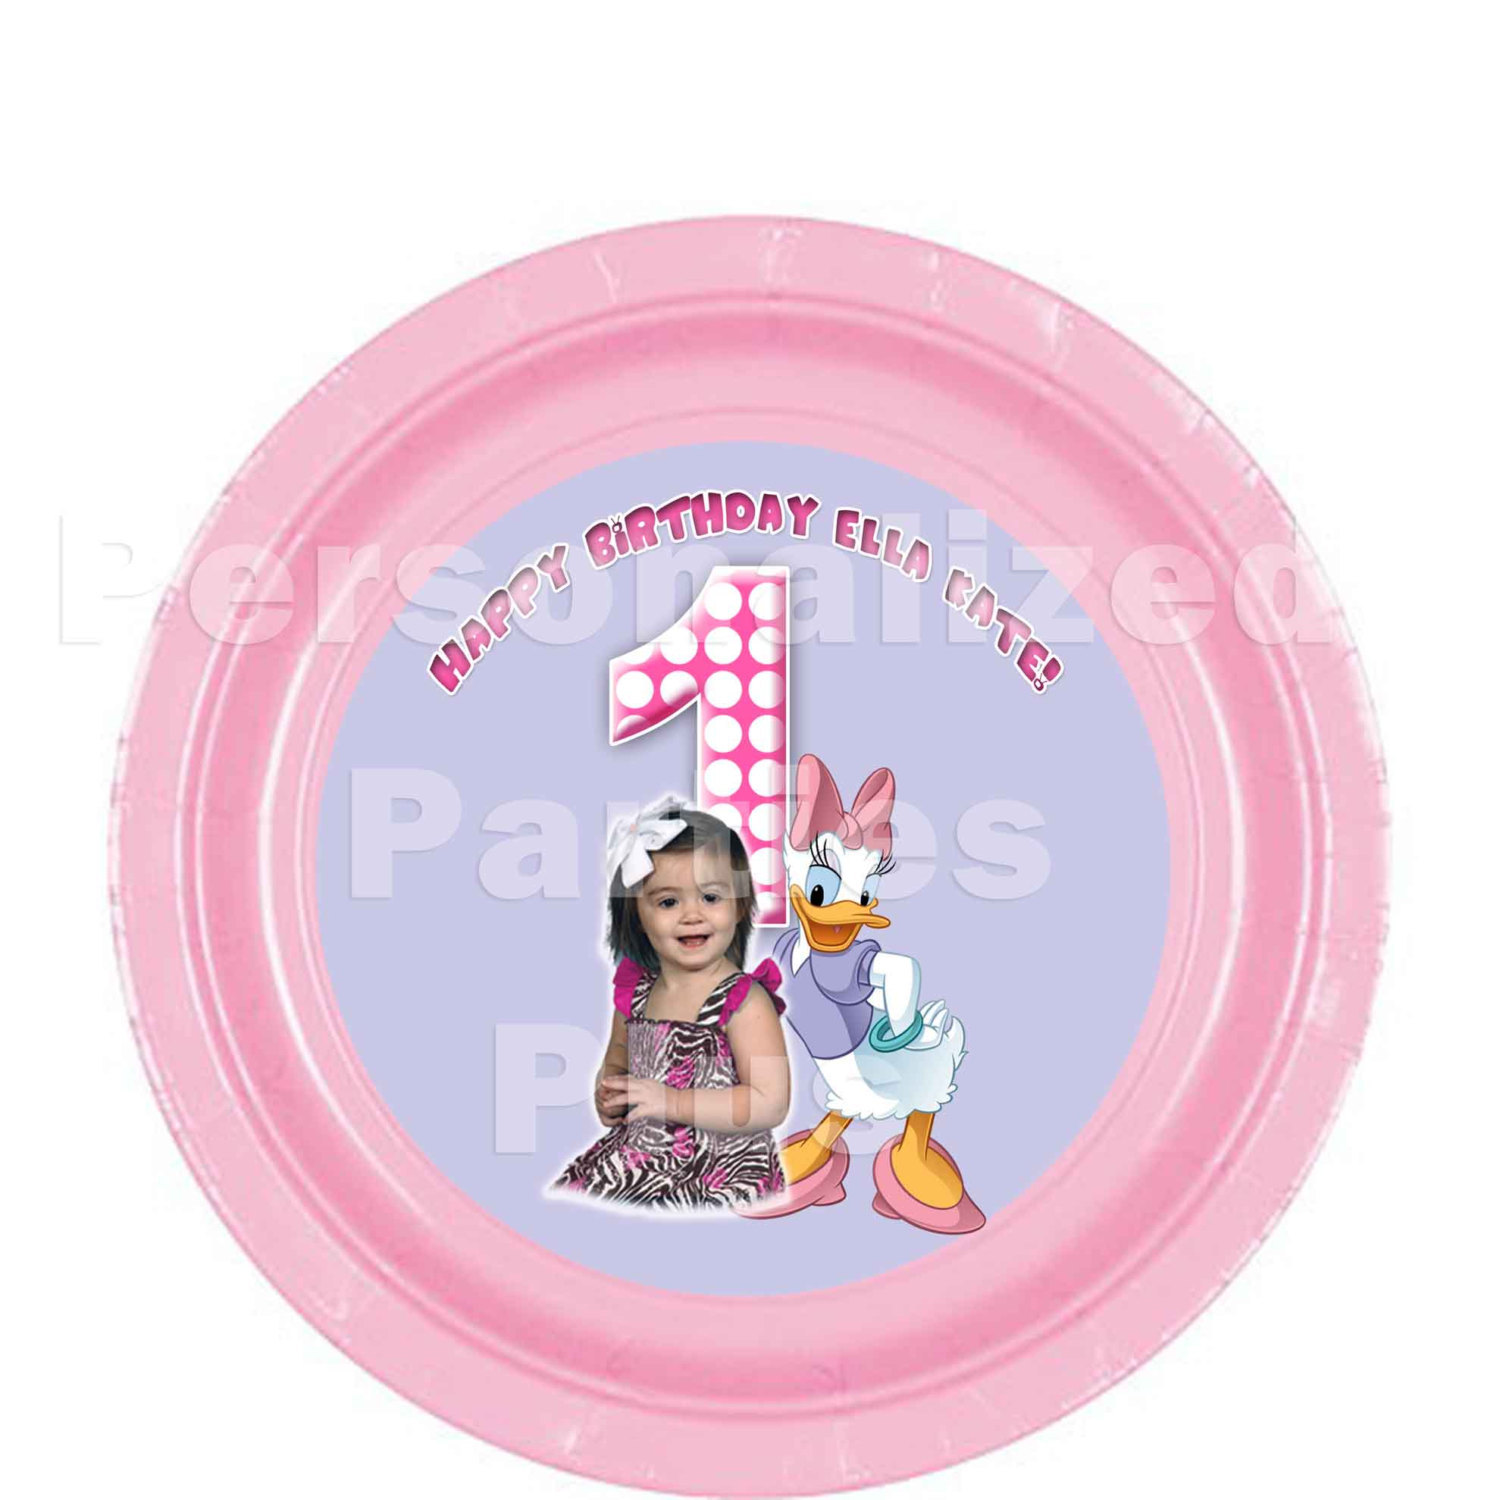 Daisy Duck plates and cups for birthdays or baby showers